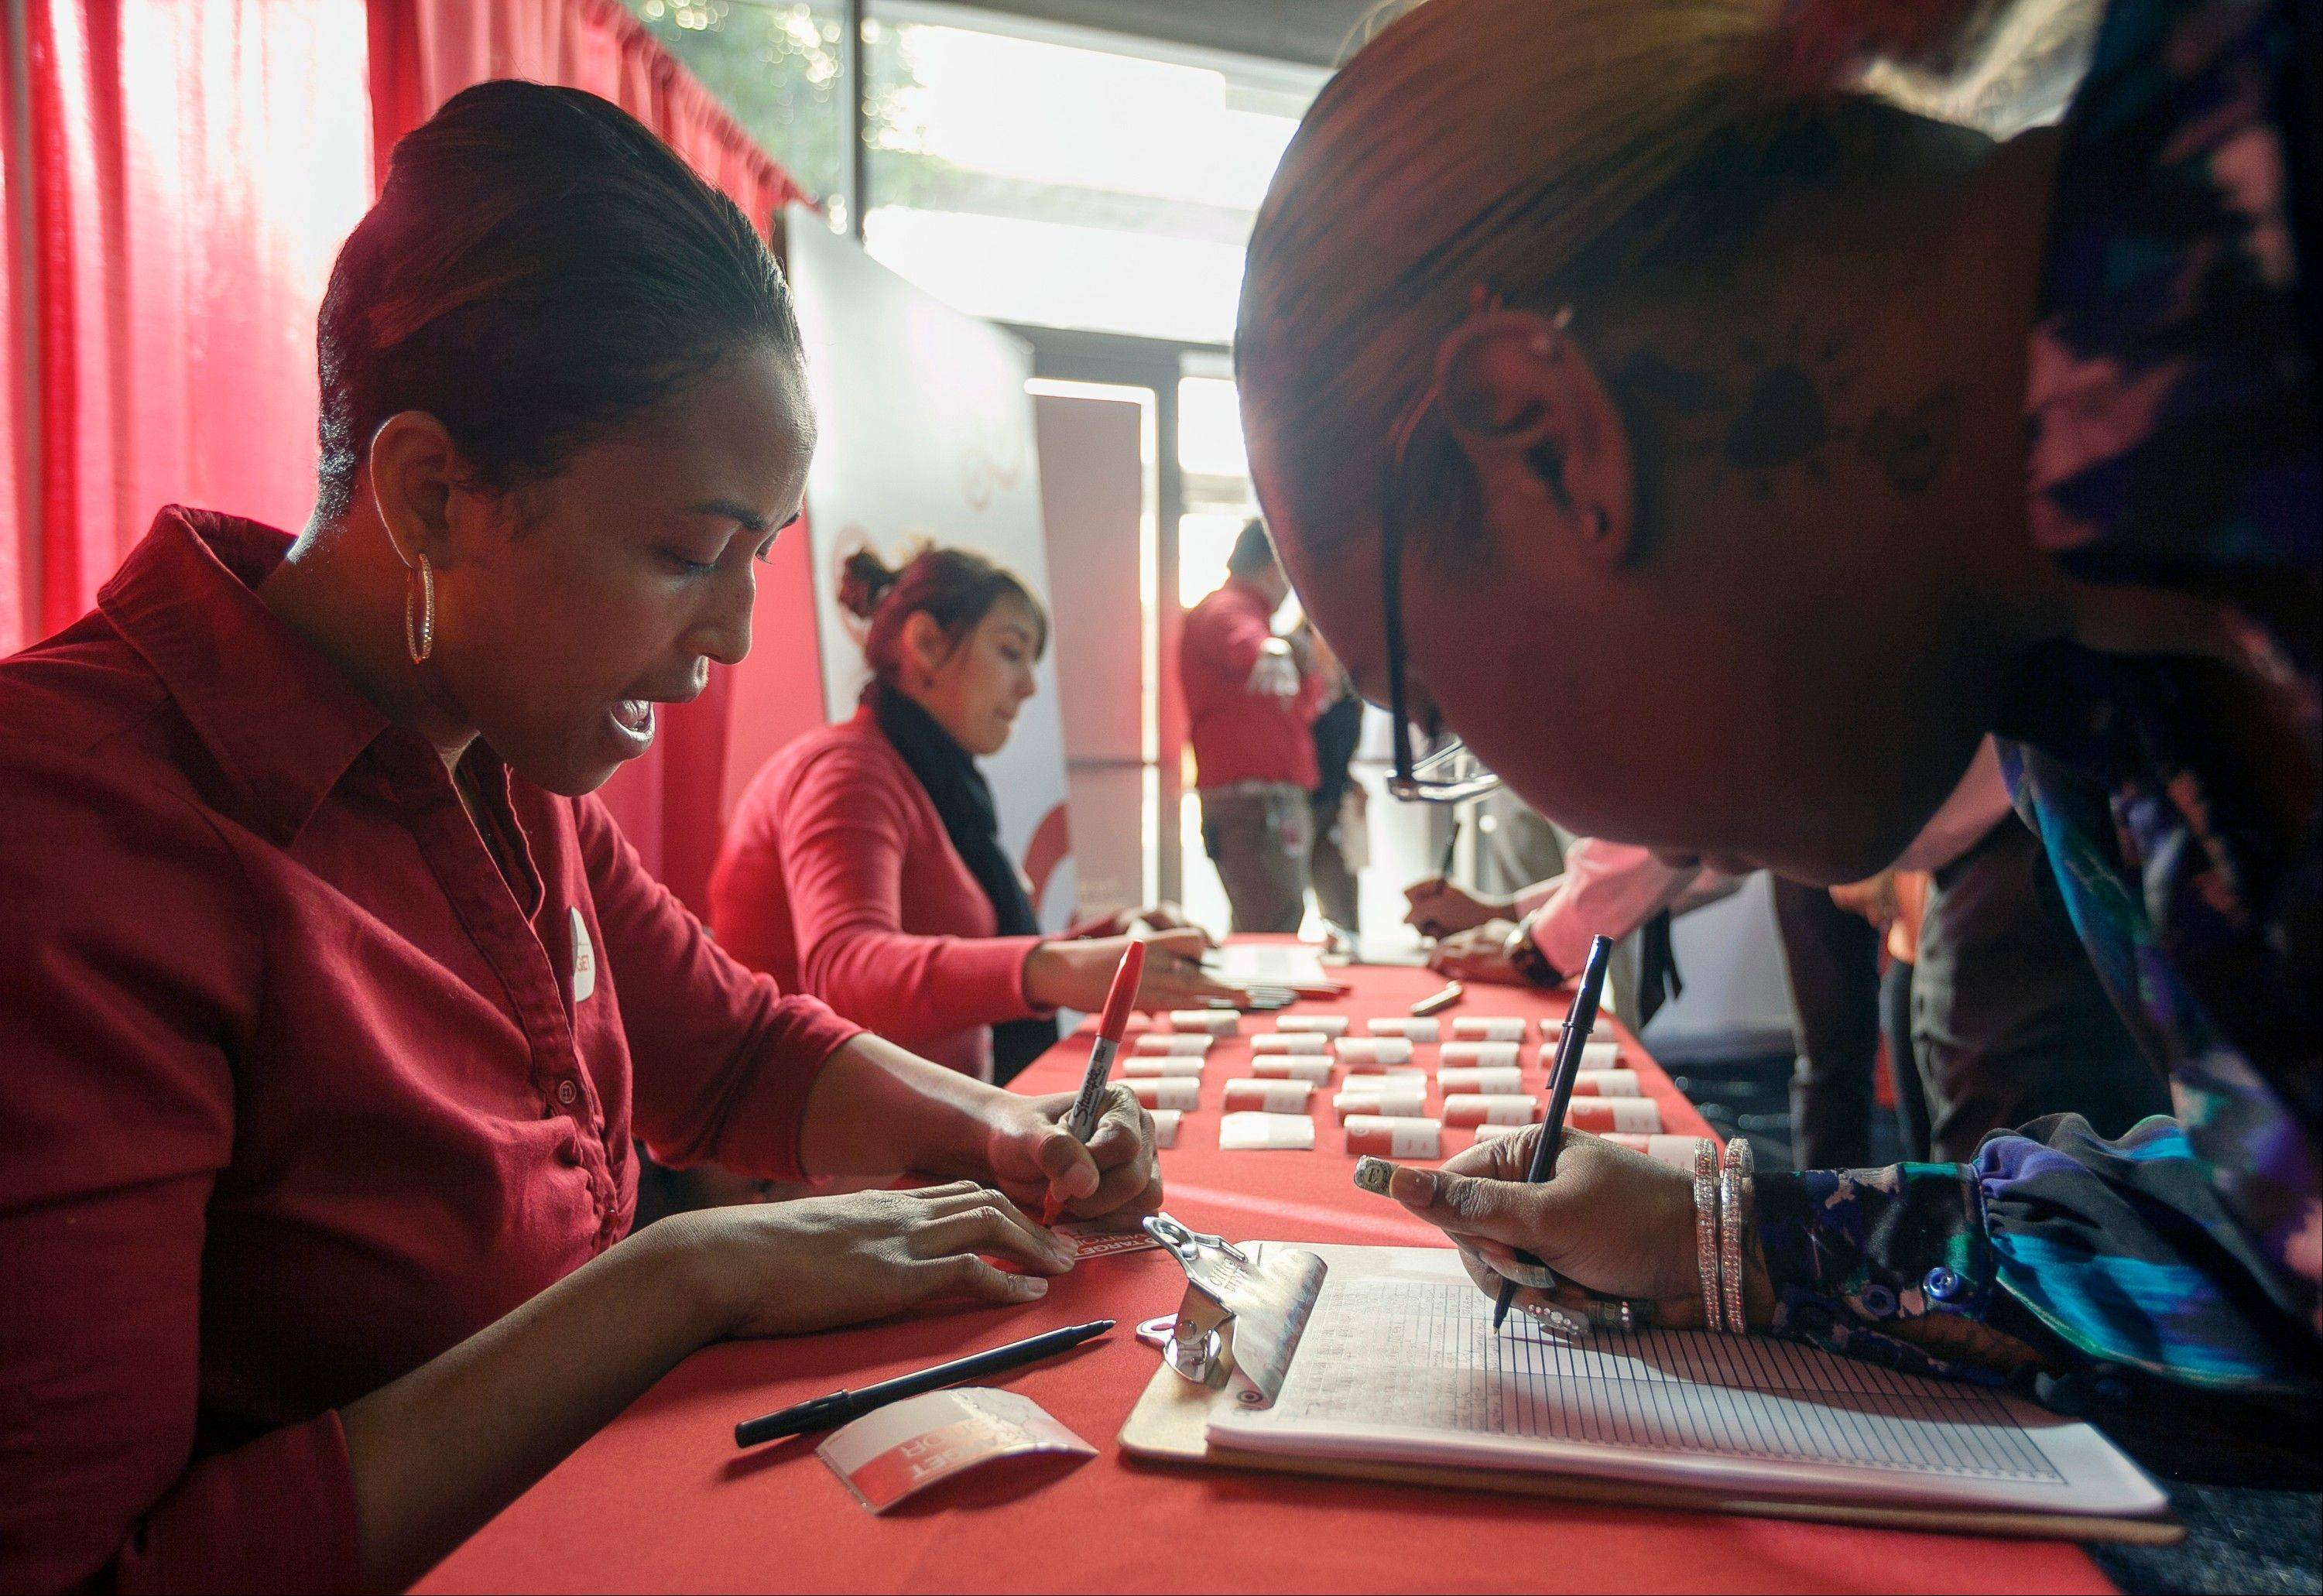 Target human resources team leader Shauna McClain, far left, signs hundreds of arriving job candidates at a Target job fair in Los Angeles.